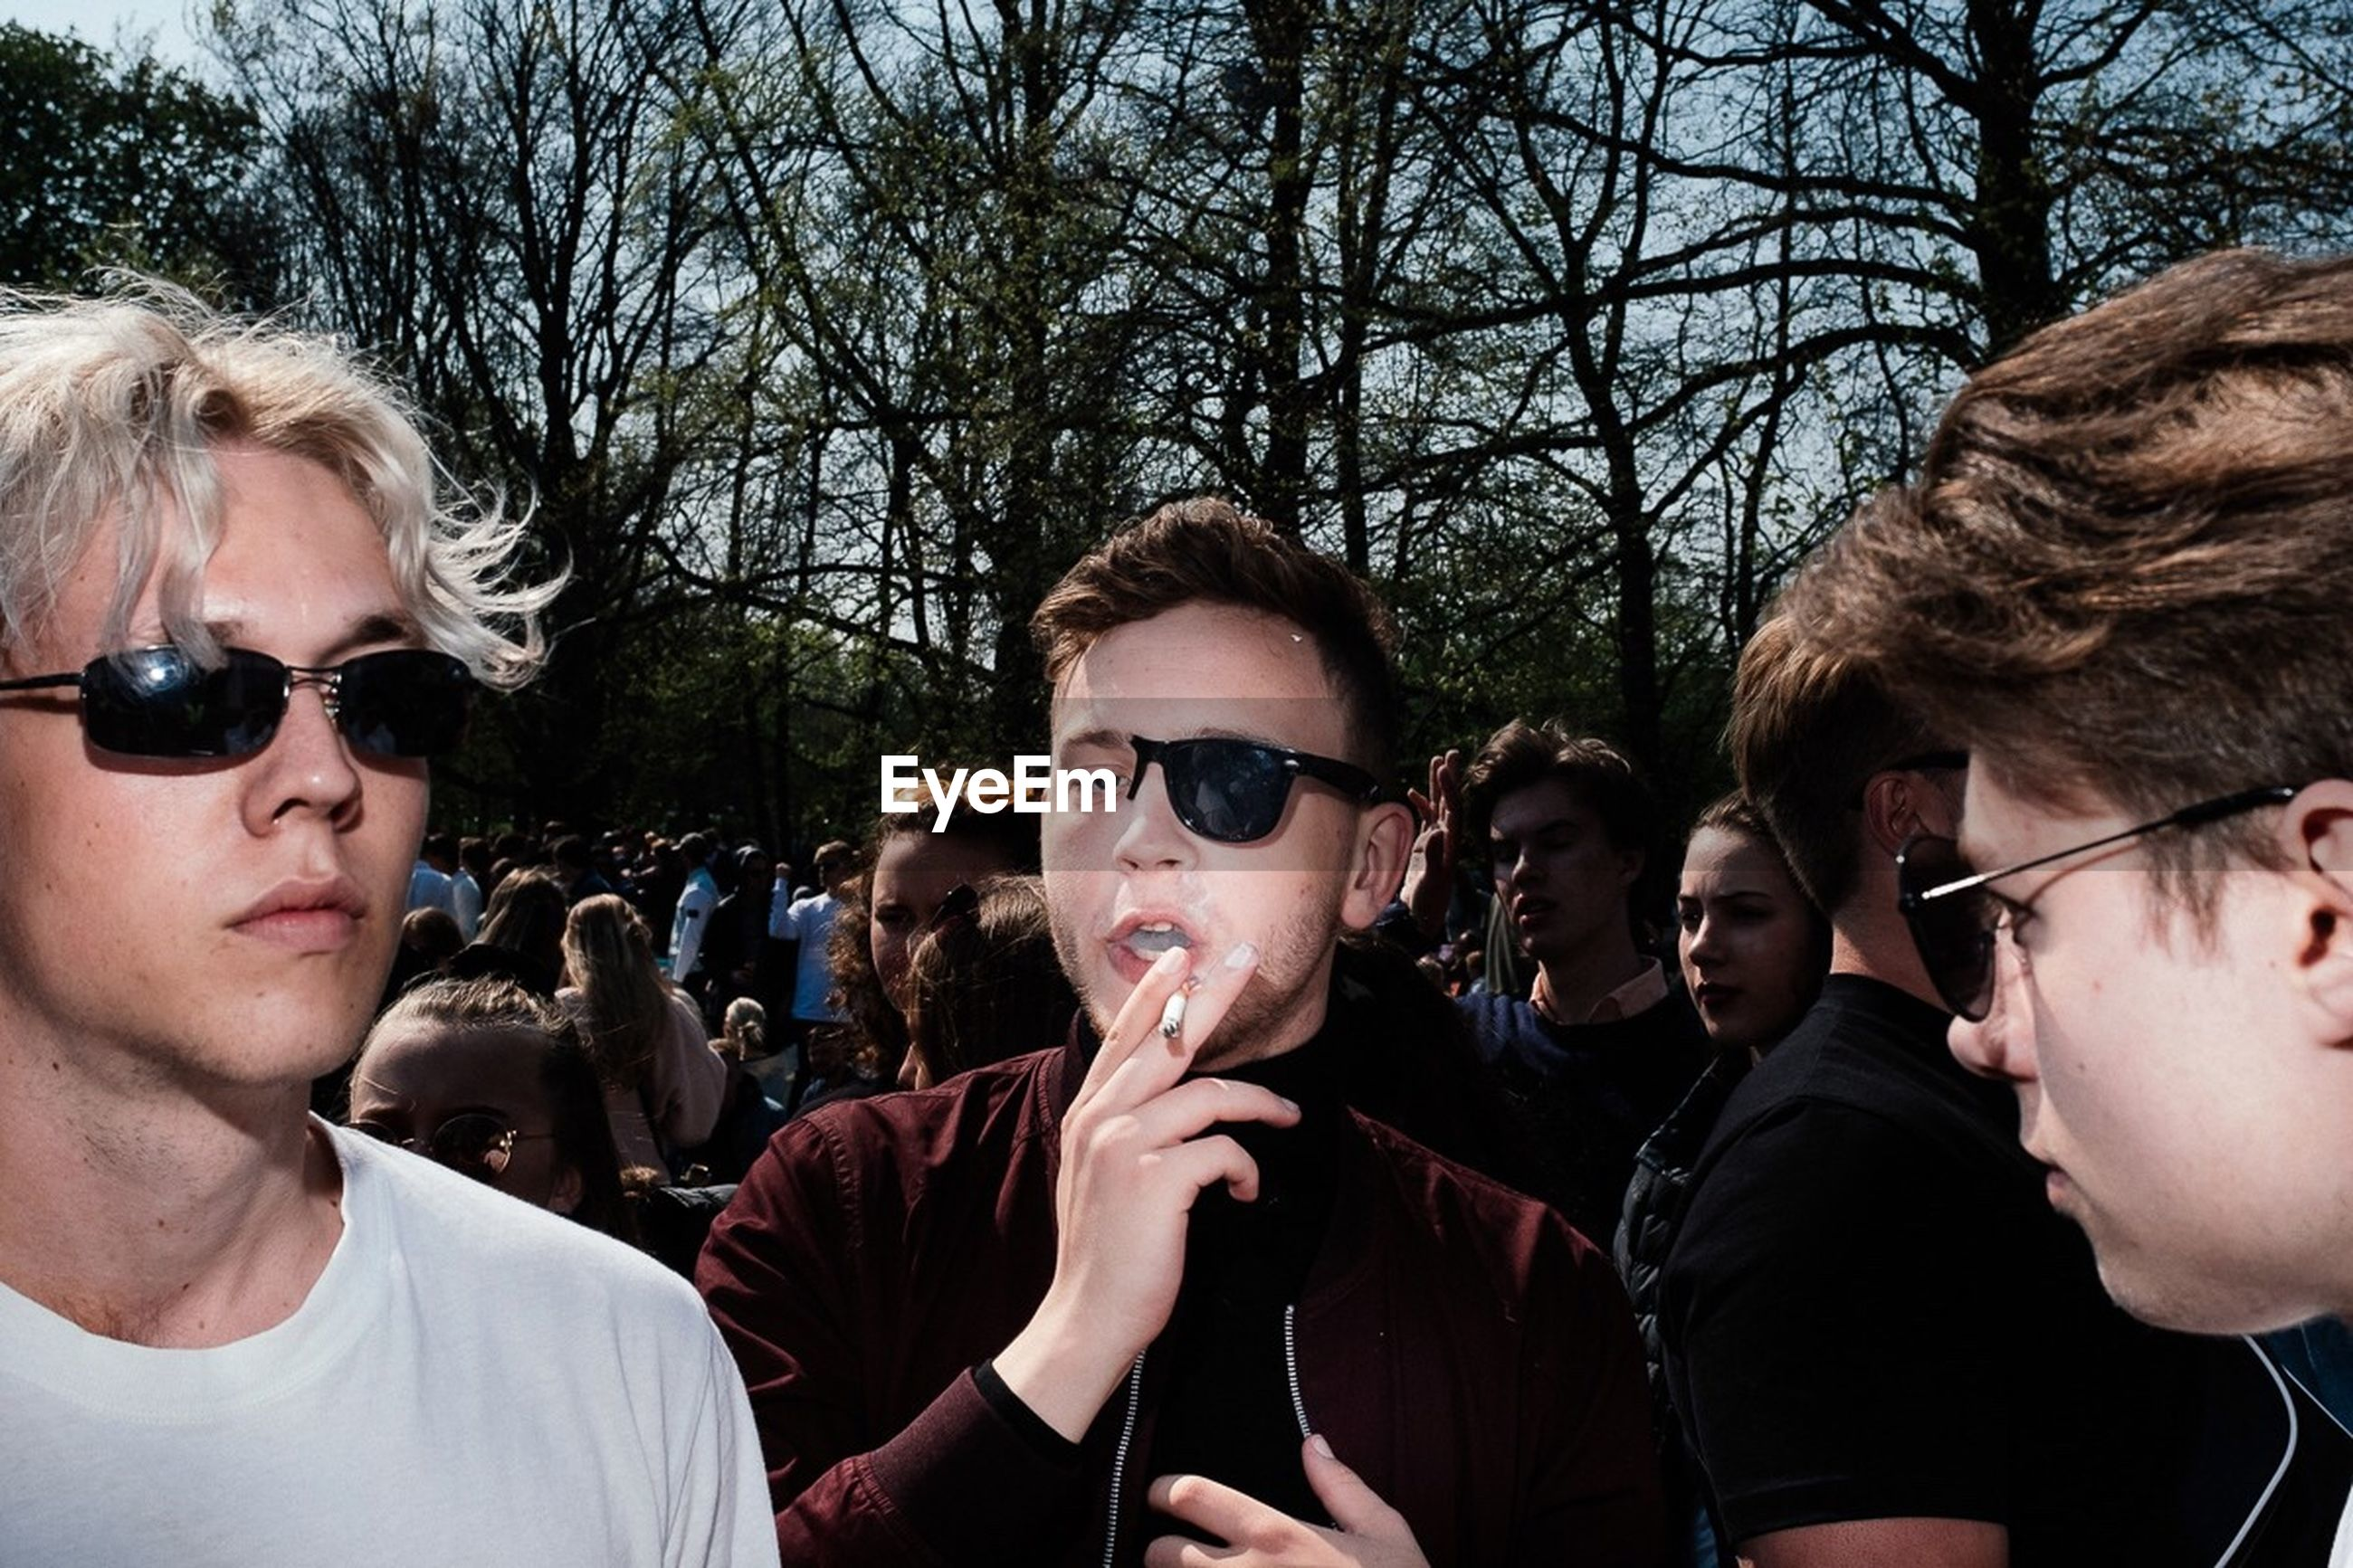 sunglasses, glasses, group of people, real people, fashion, people, crowd, leisure activity, young men, men, tree, portrait, lifestyles, young adult, nature, headshot, togetherness, outdoors, teenager, adolescence